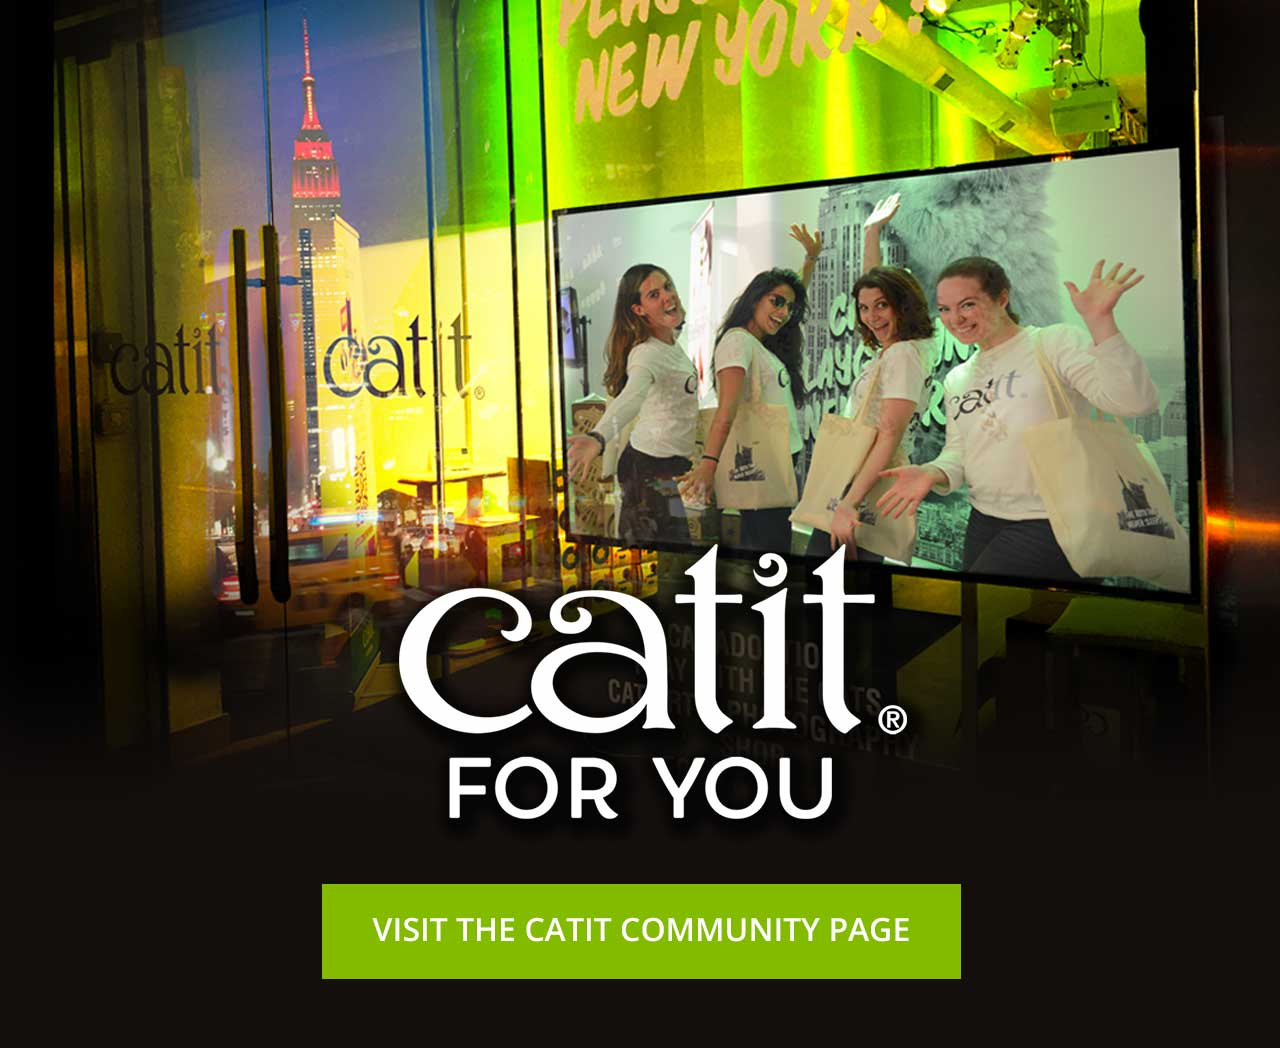 Catit for you - visit the Catit community page